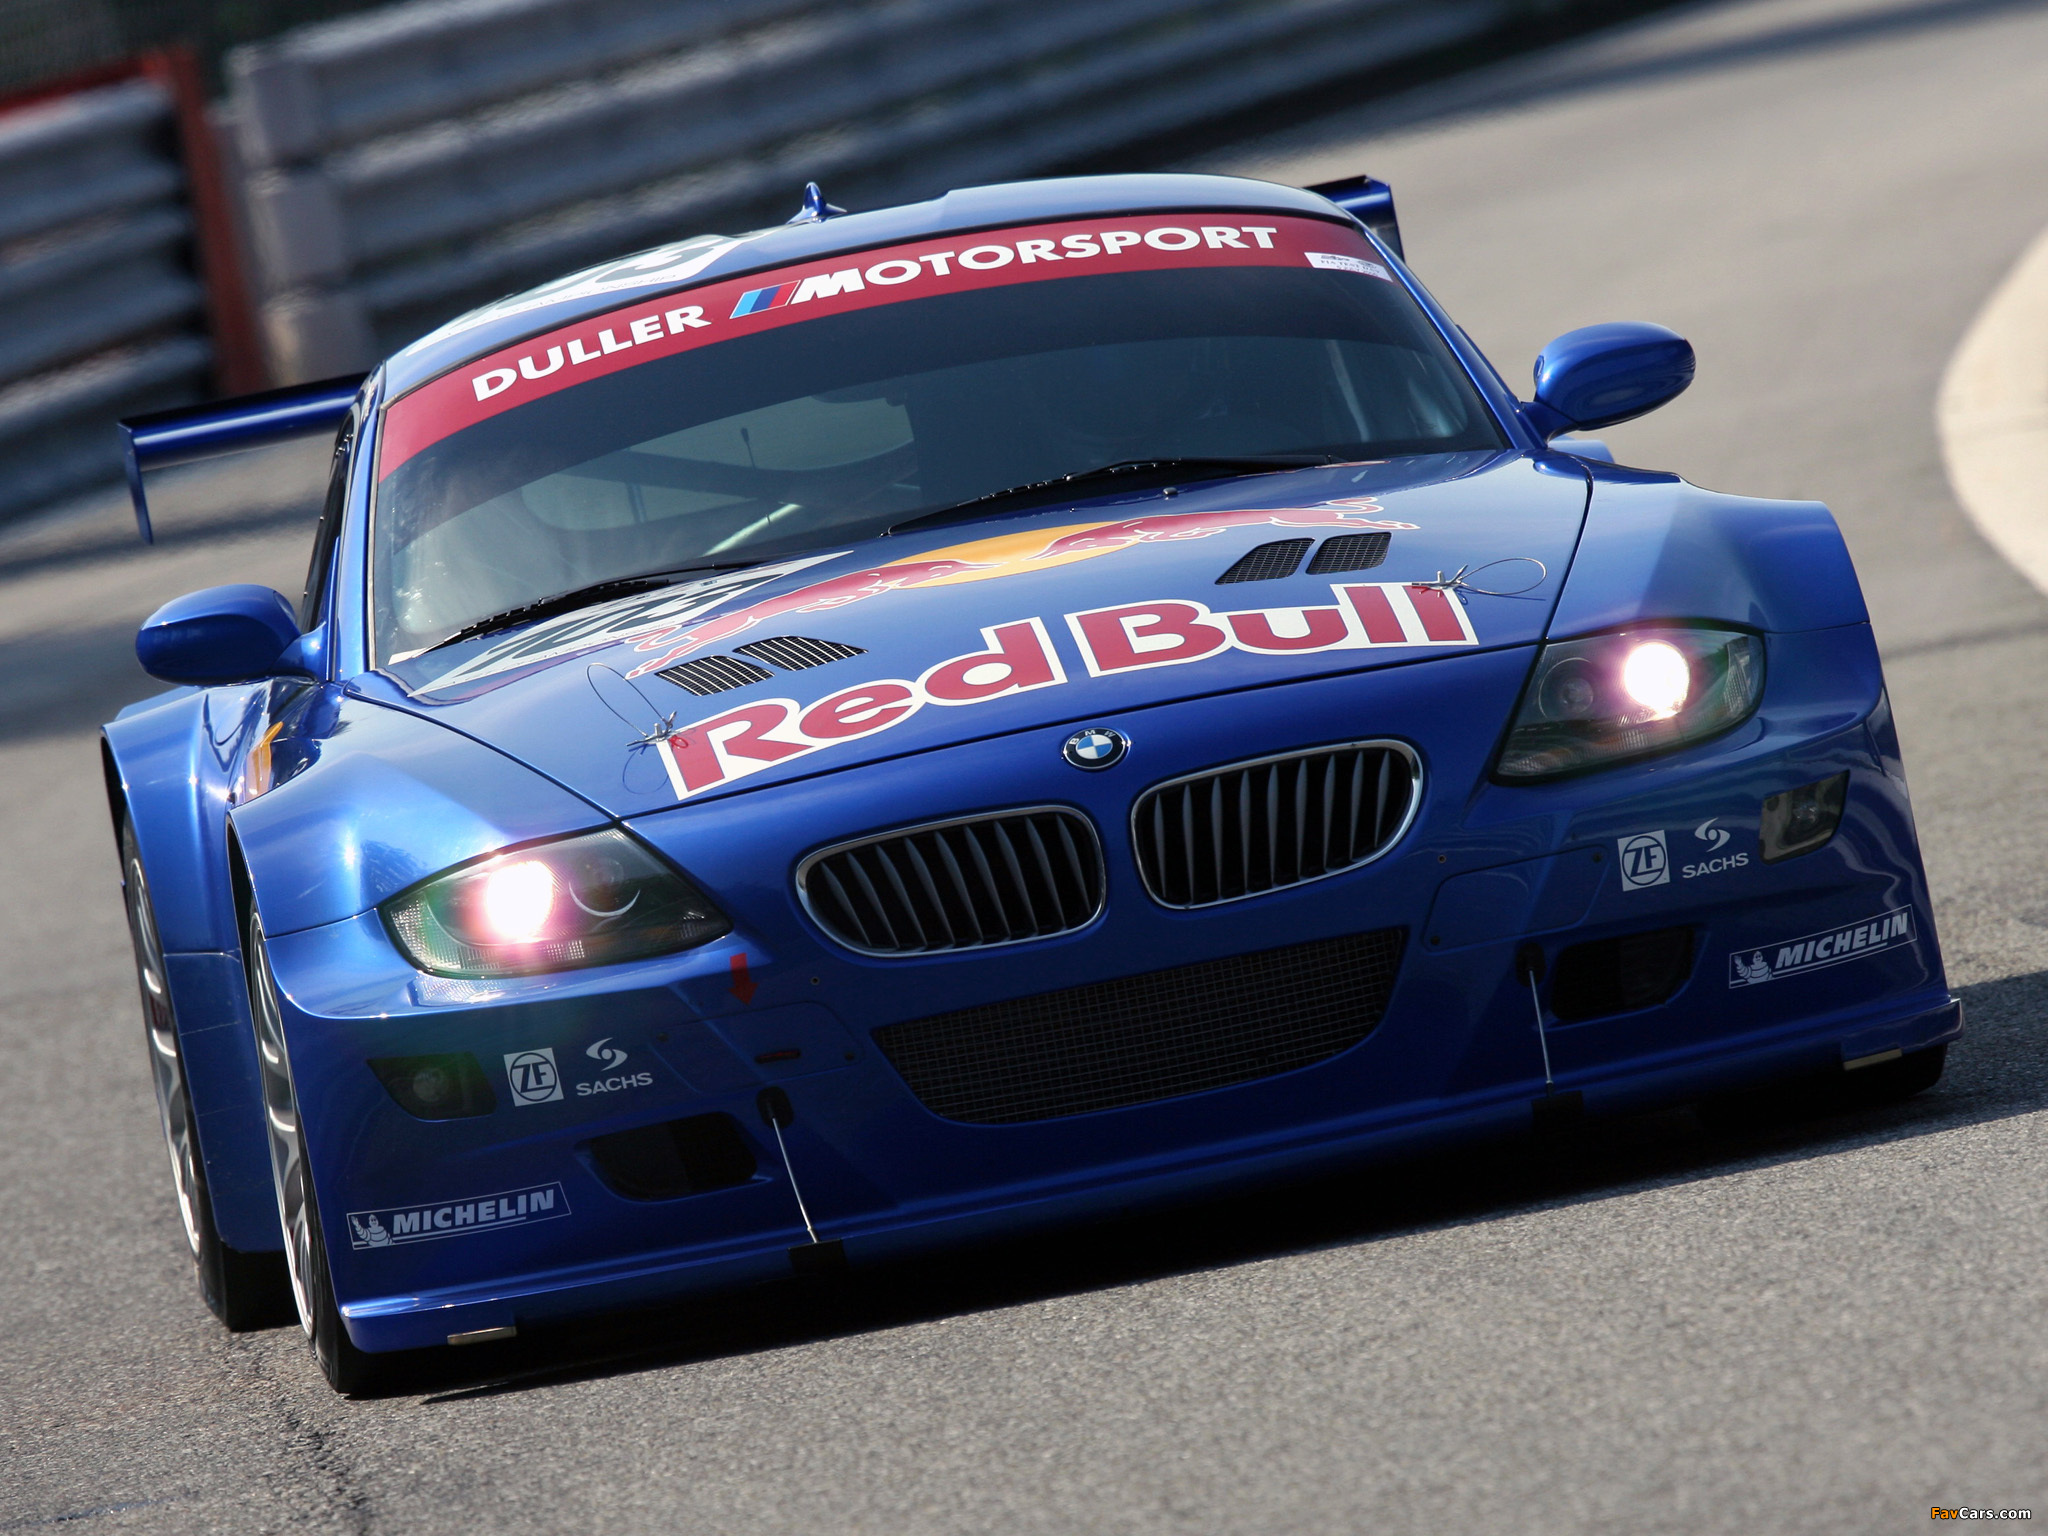 Images Of Bmw Z4 M Coupe Race Car E85 2006 09 2048x1536